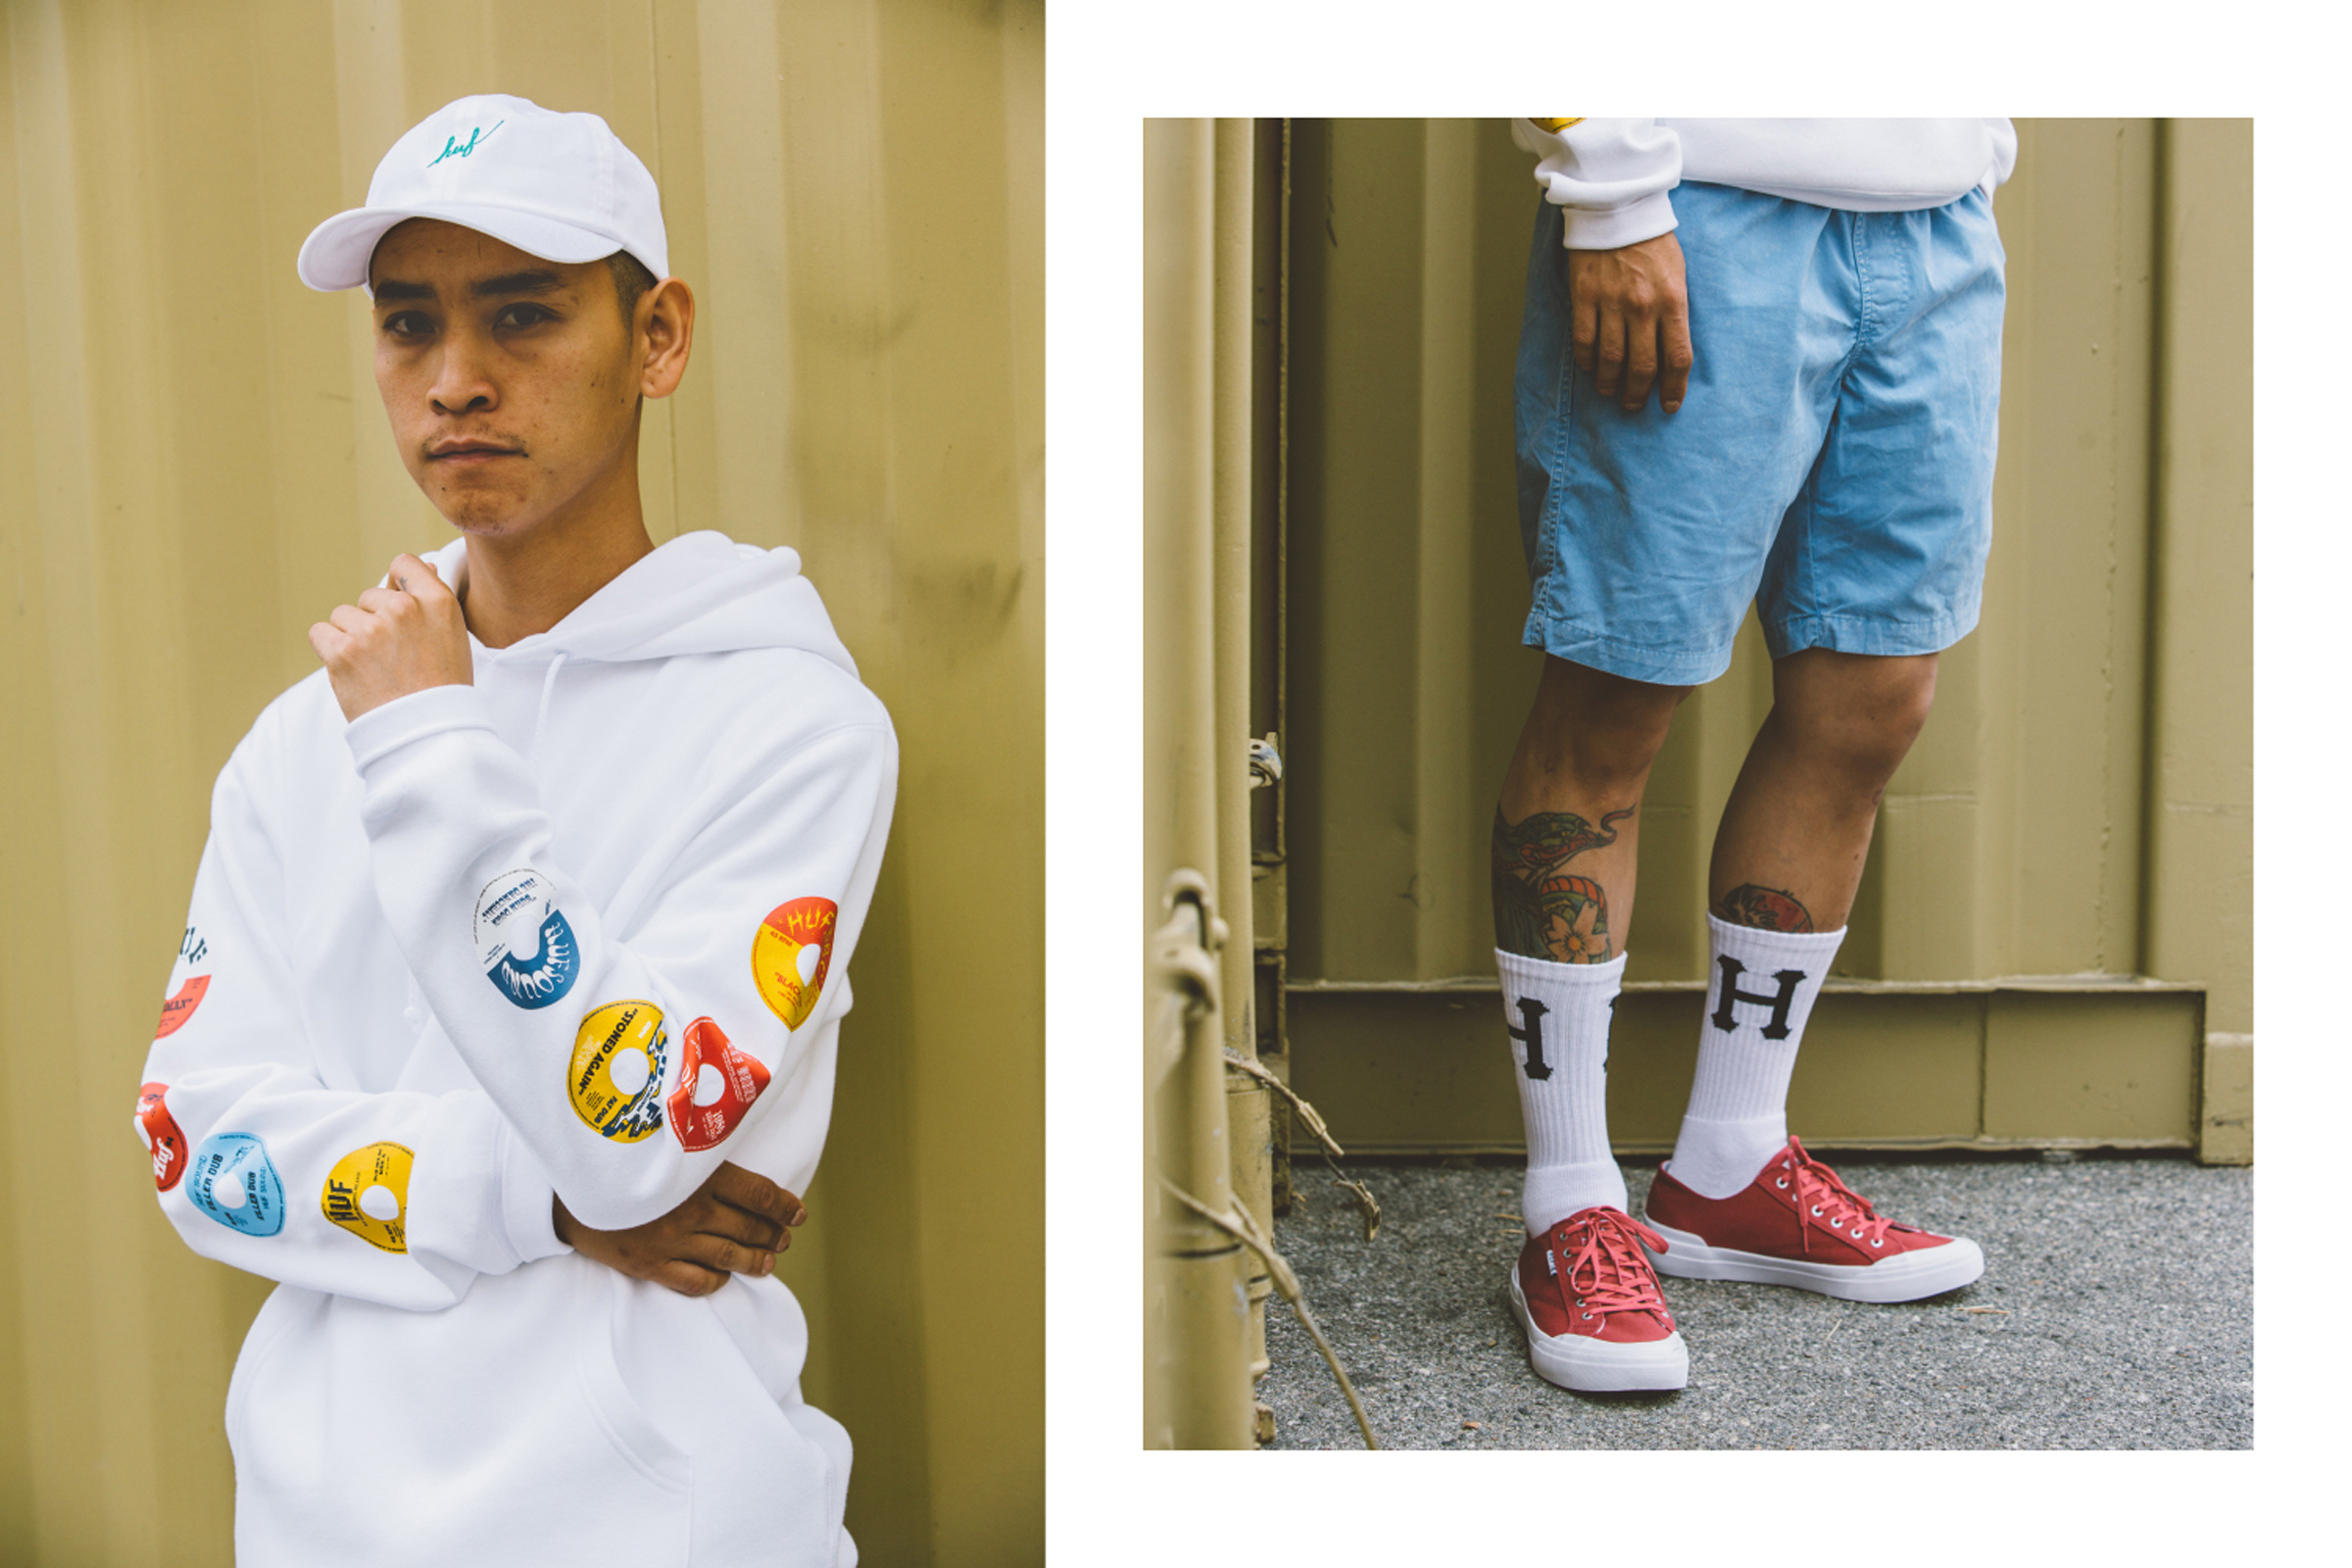 010417 - HUF Worldwide Spring 17 - Lookbook - 09